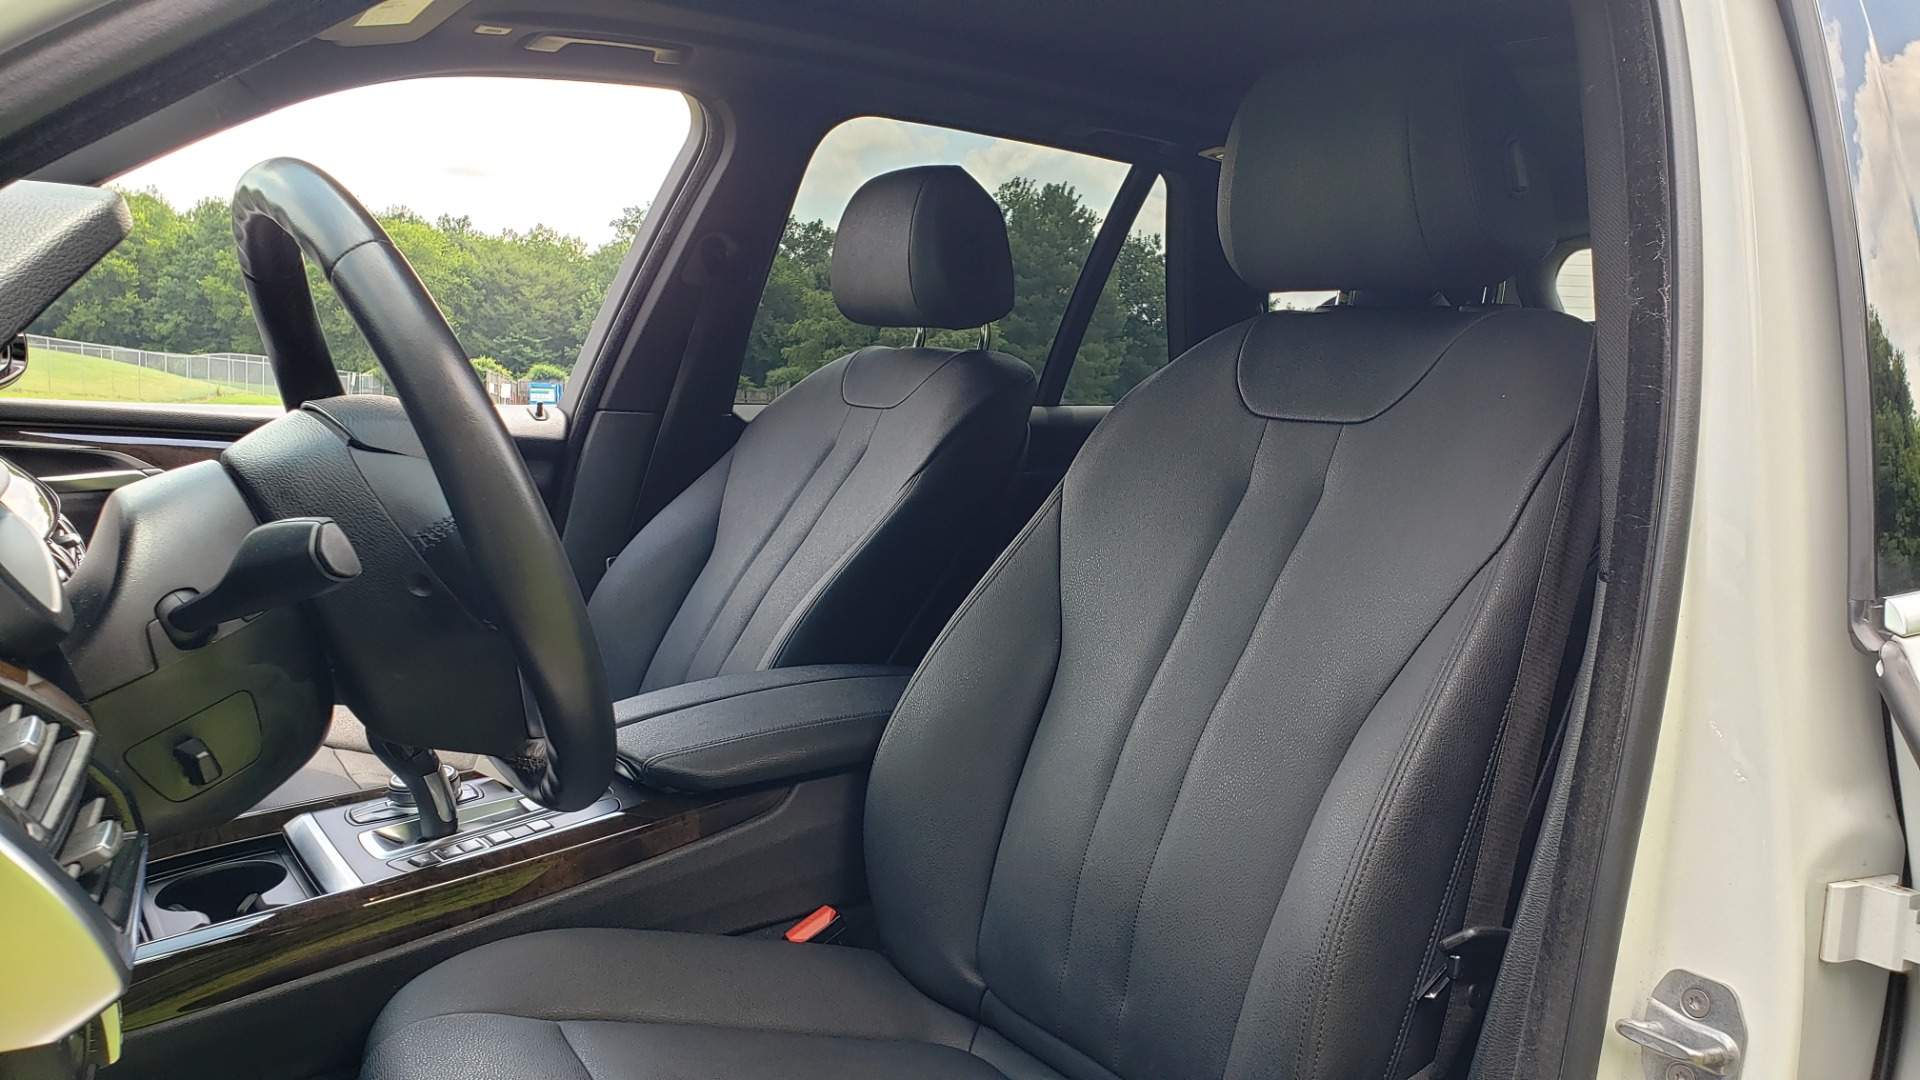 Used 2017 BMW X5 XDRIVE35I / NAV / SUNROOF / RUNNING BOARDS / REARVIEW for sale $33,995 at Formula Imports in Charlotte NC 28227 40